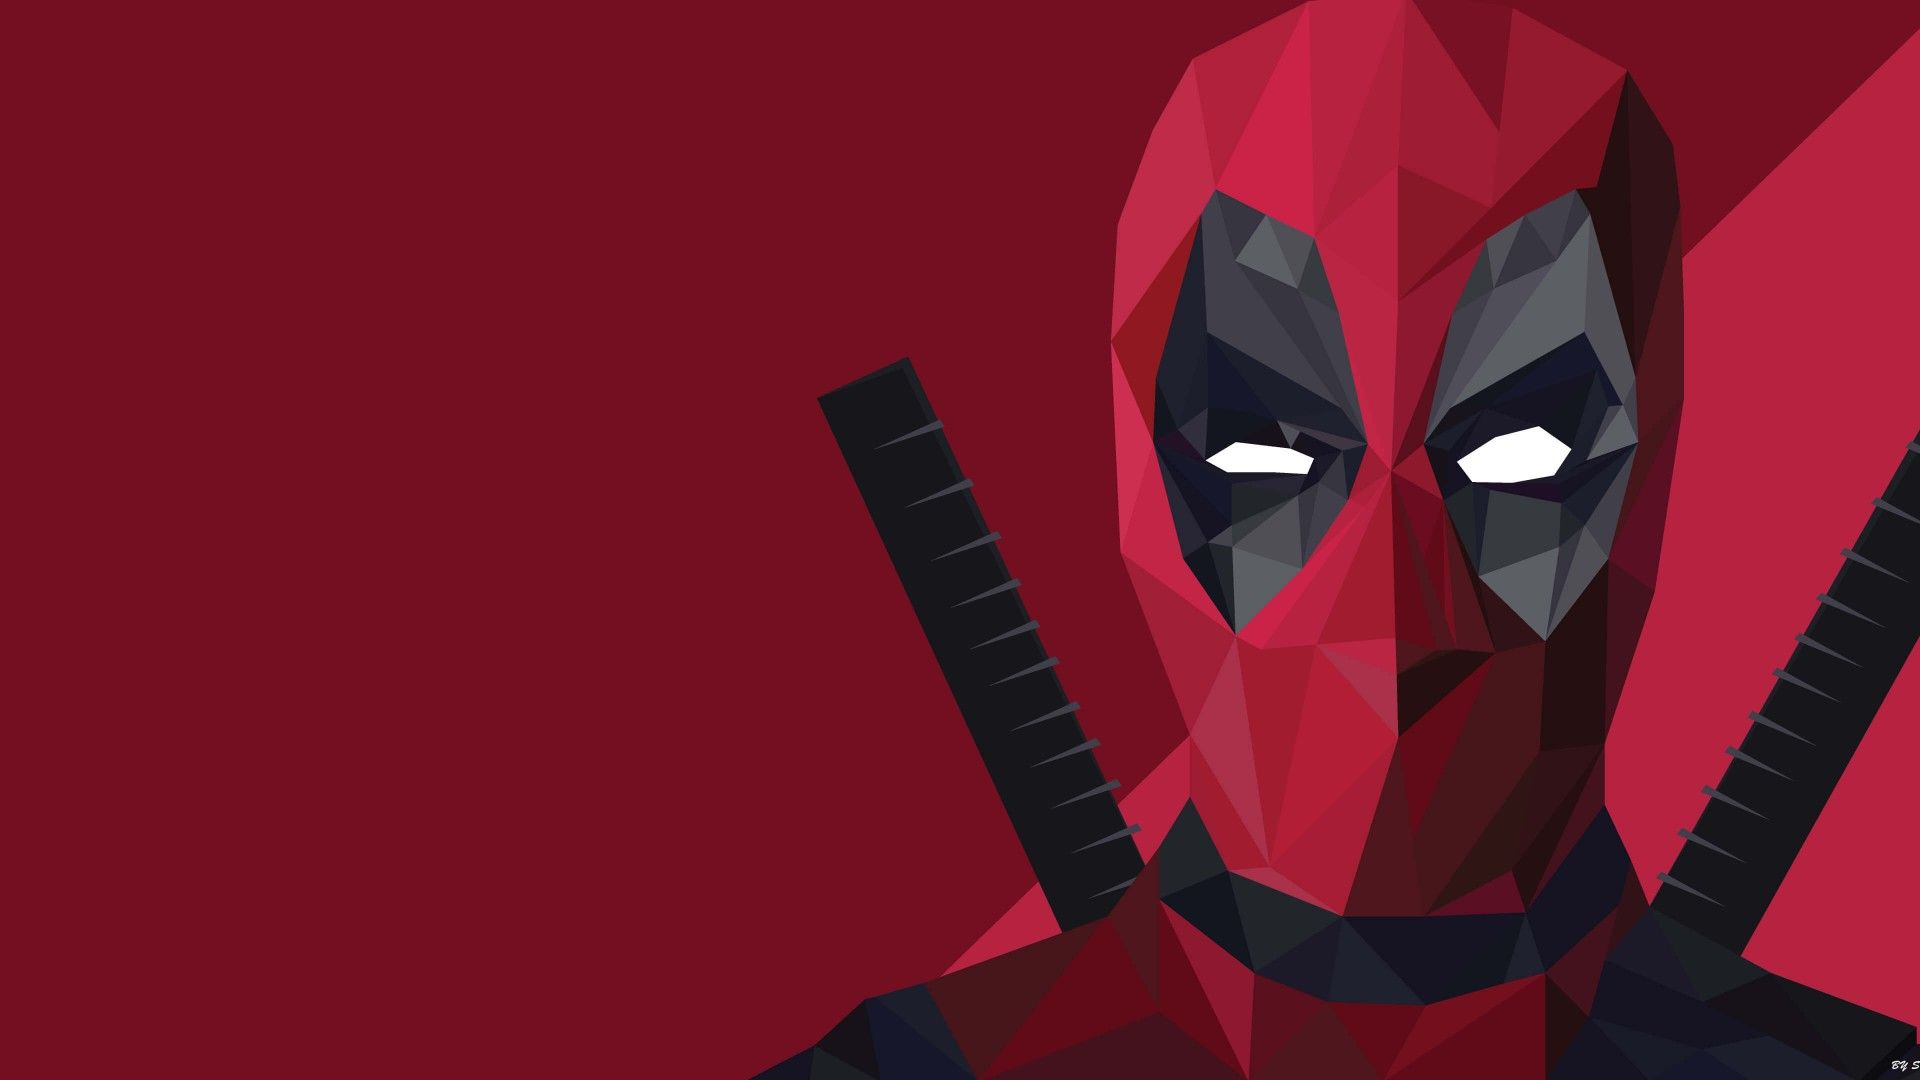 Deadpool Wallpaper 1920x1080 Hd Google Search Deadpool In 2019